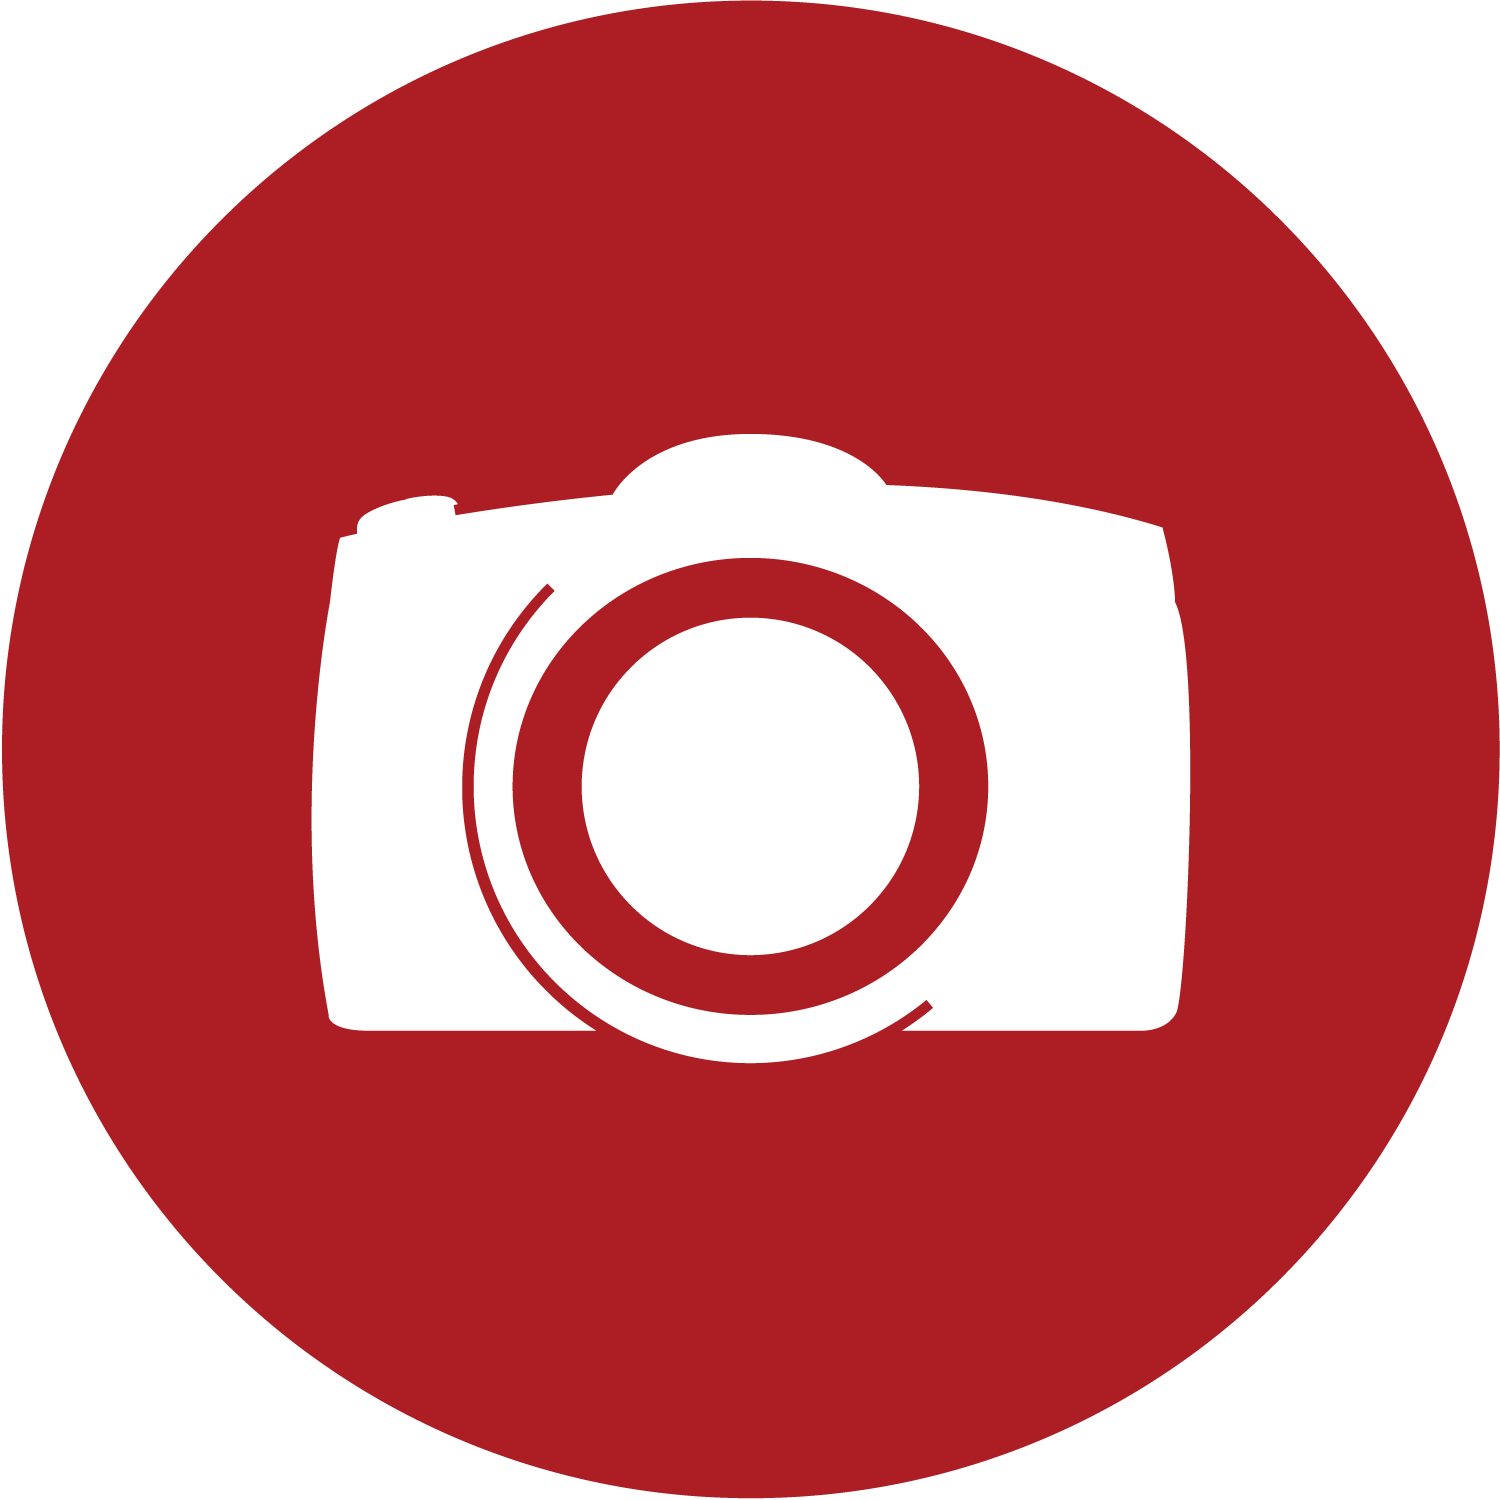 10 Pink Transparent Camera Icon Images - YouTube Logo Icon ...